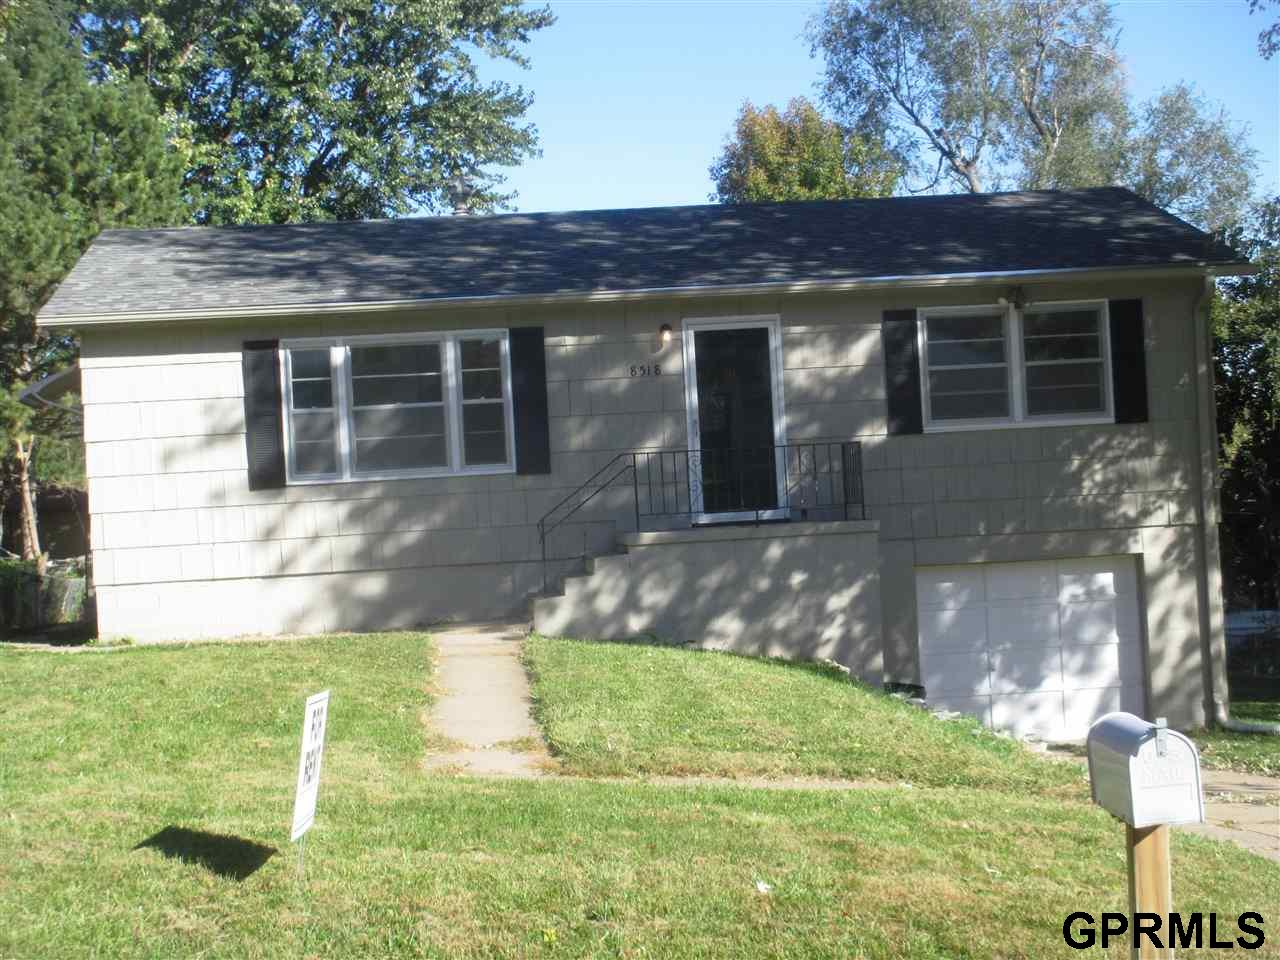 Rental Homes for Rent, ListingId:35775516, location: 8518 Underwood Omaha 68114